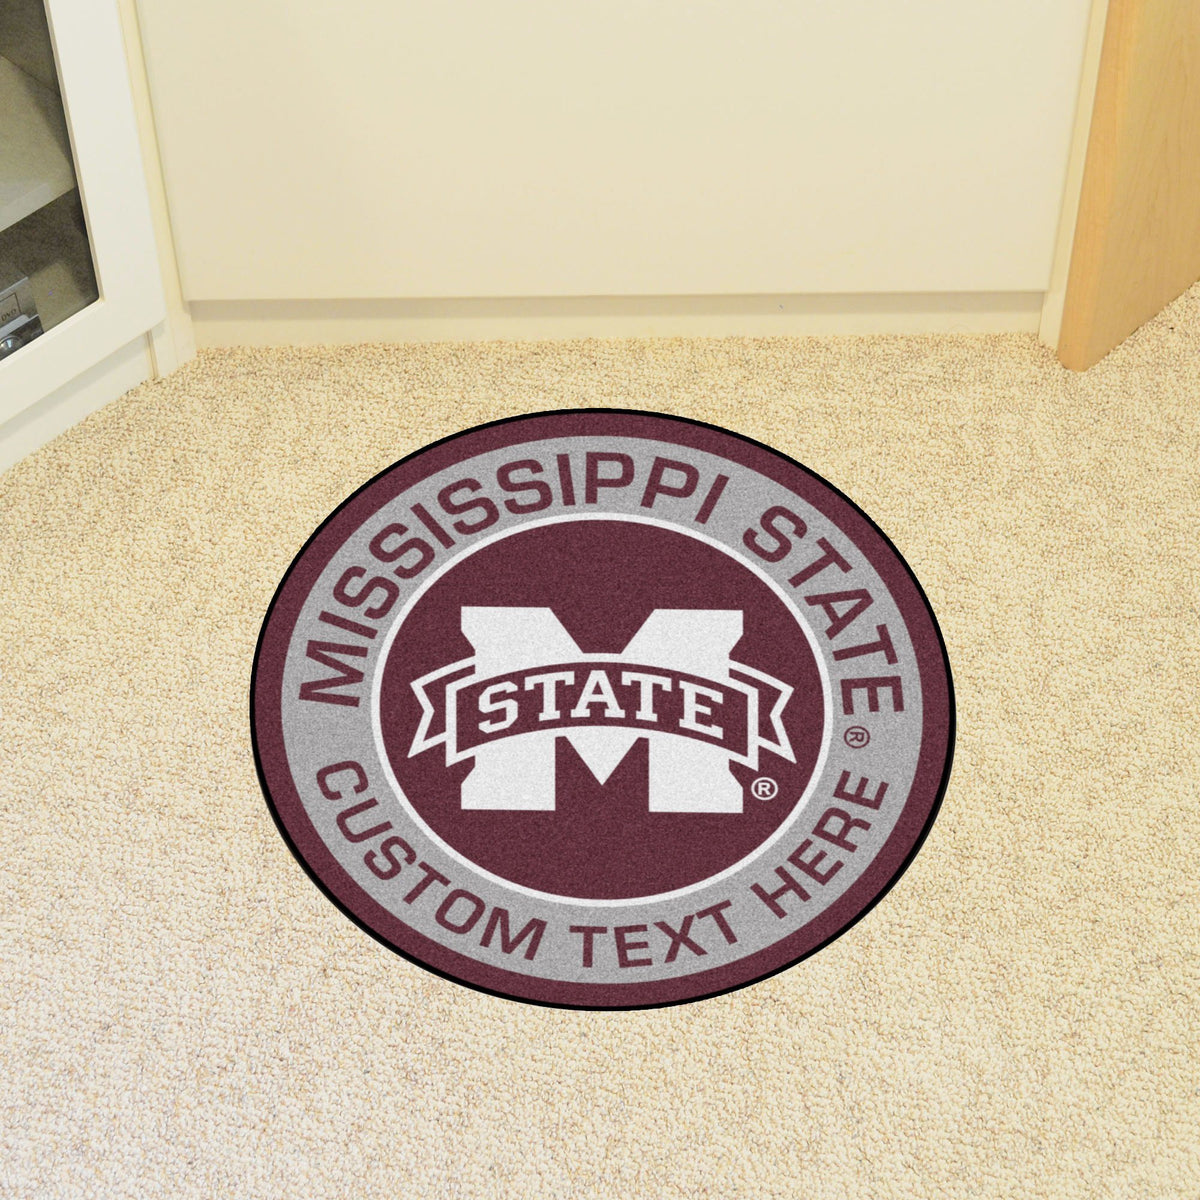 Collegiate Personalized Roundel Mat Personalized Roundel Mat Fan Mats Mississippi State University